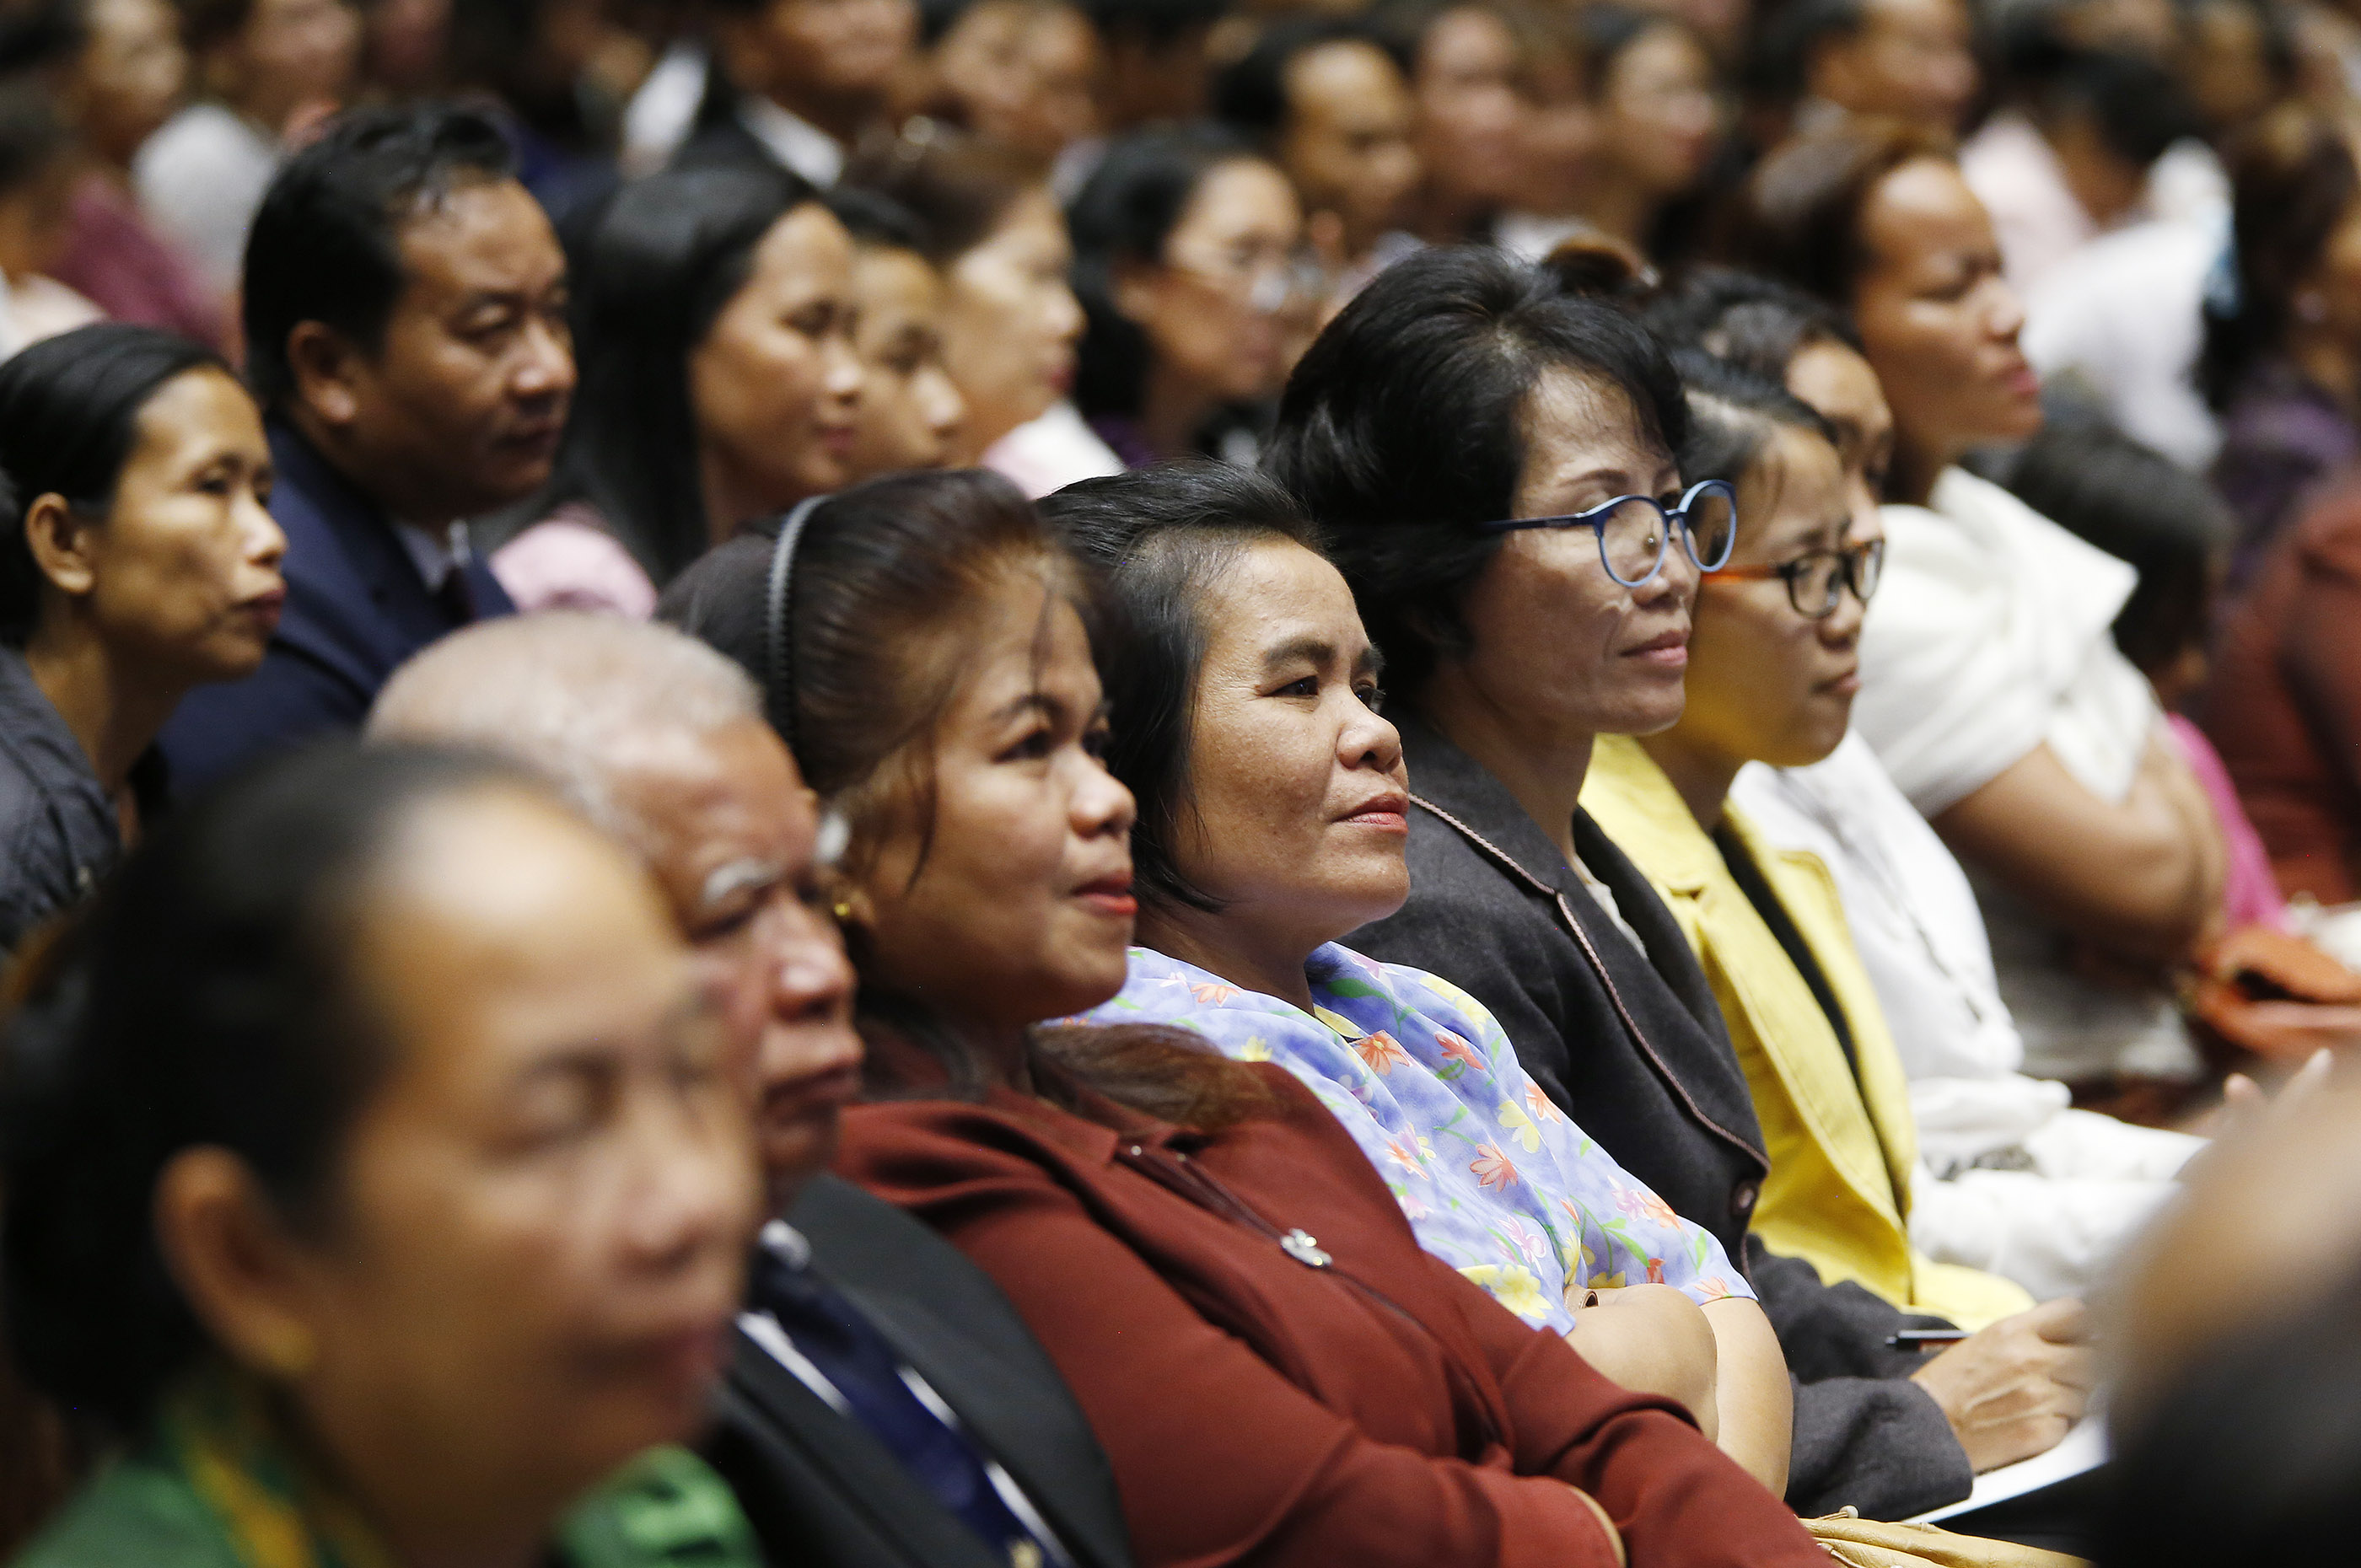 Attendees listen during a devotional with President Russell M. Nelson in Bangkok, Thailand, on Friday, April 20, 2018.